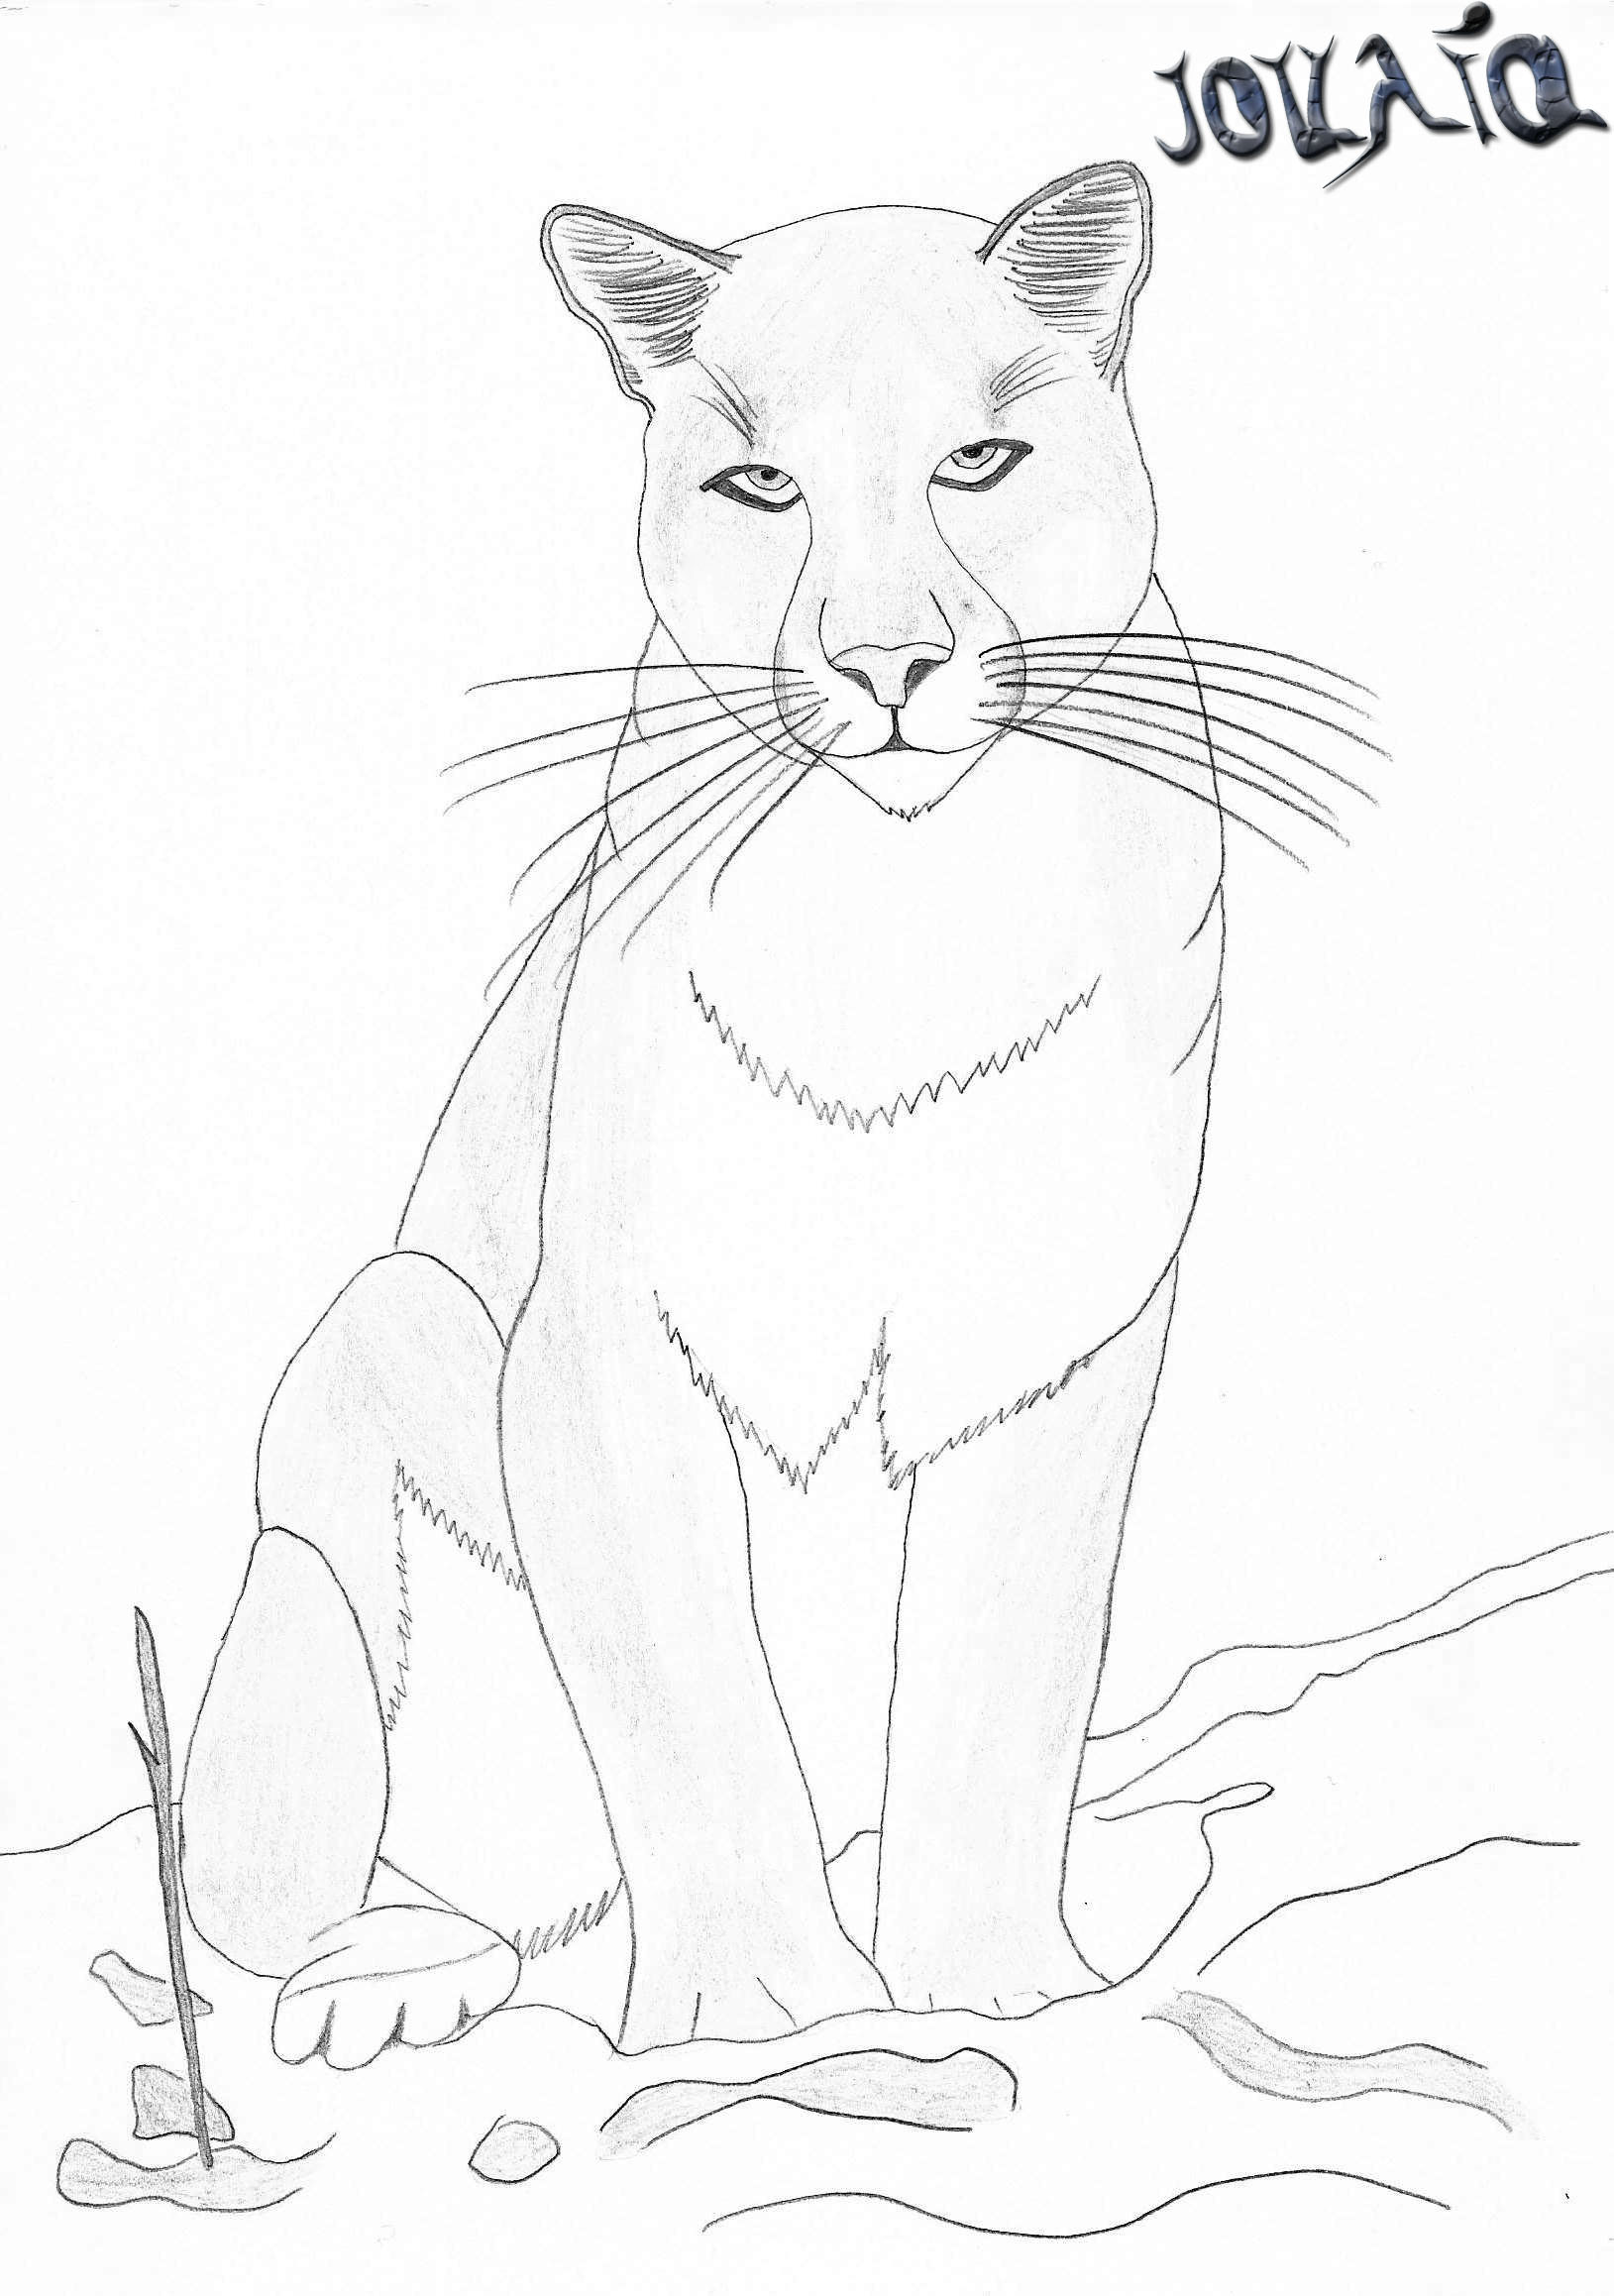 Batman coloring pages printable free - Mountain_lion_by_taitiii D5rtsra Mountain Lion Drawings Lion Free Download Printable Coloring Pages On Pumas Batman Coloring